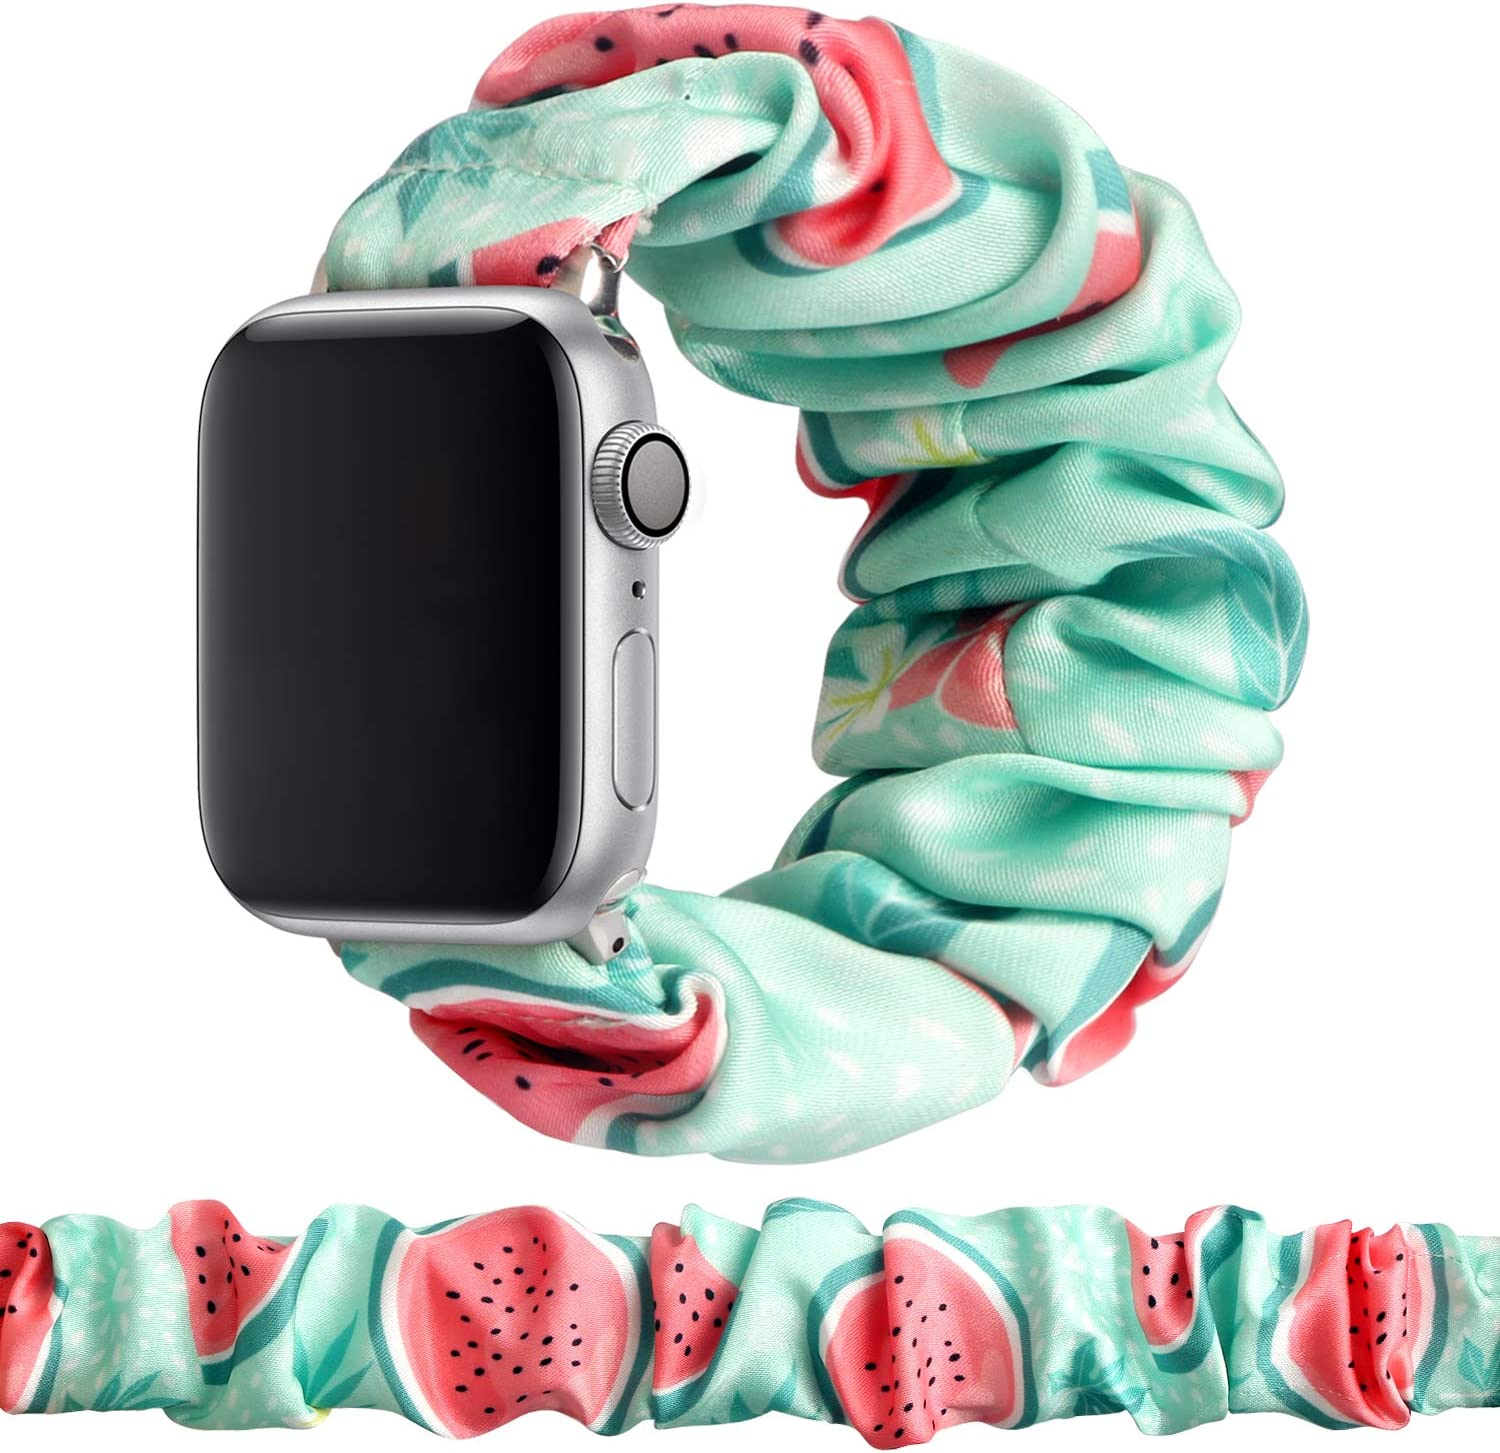 MITERV Compatible with Apple Watch Band 38mm 40mm Soft Floral Fabric Elastic Scrunchies iWatch Bands for Apple Watch Series 6,SE,5,4,3,2,1 38mm/40mm Watermelon S